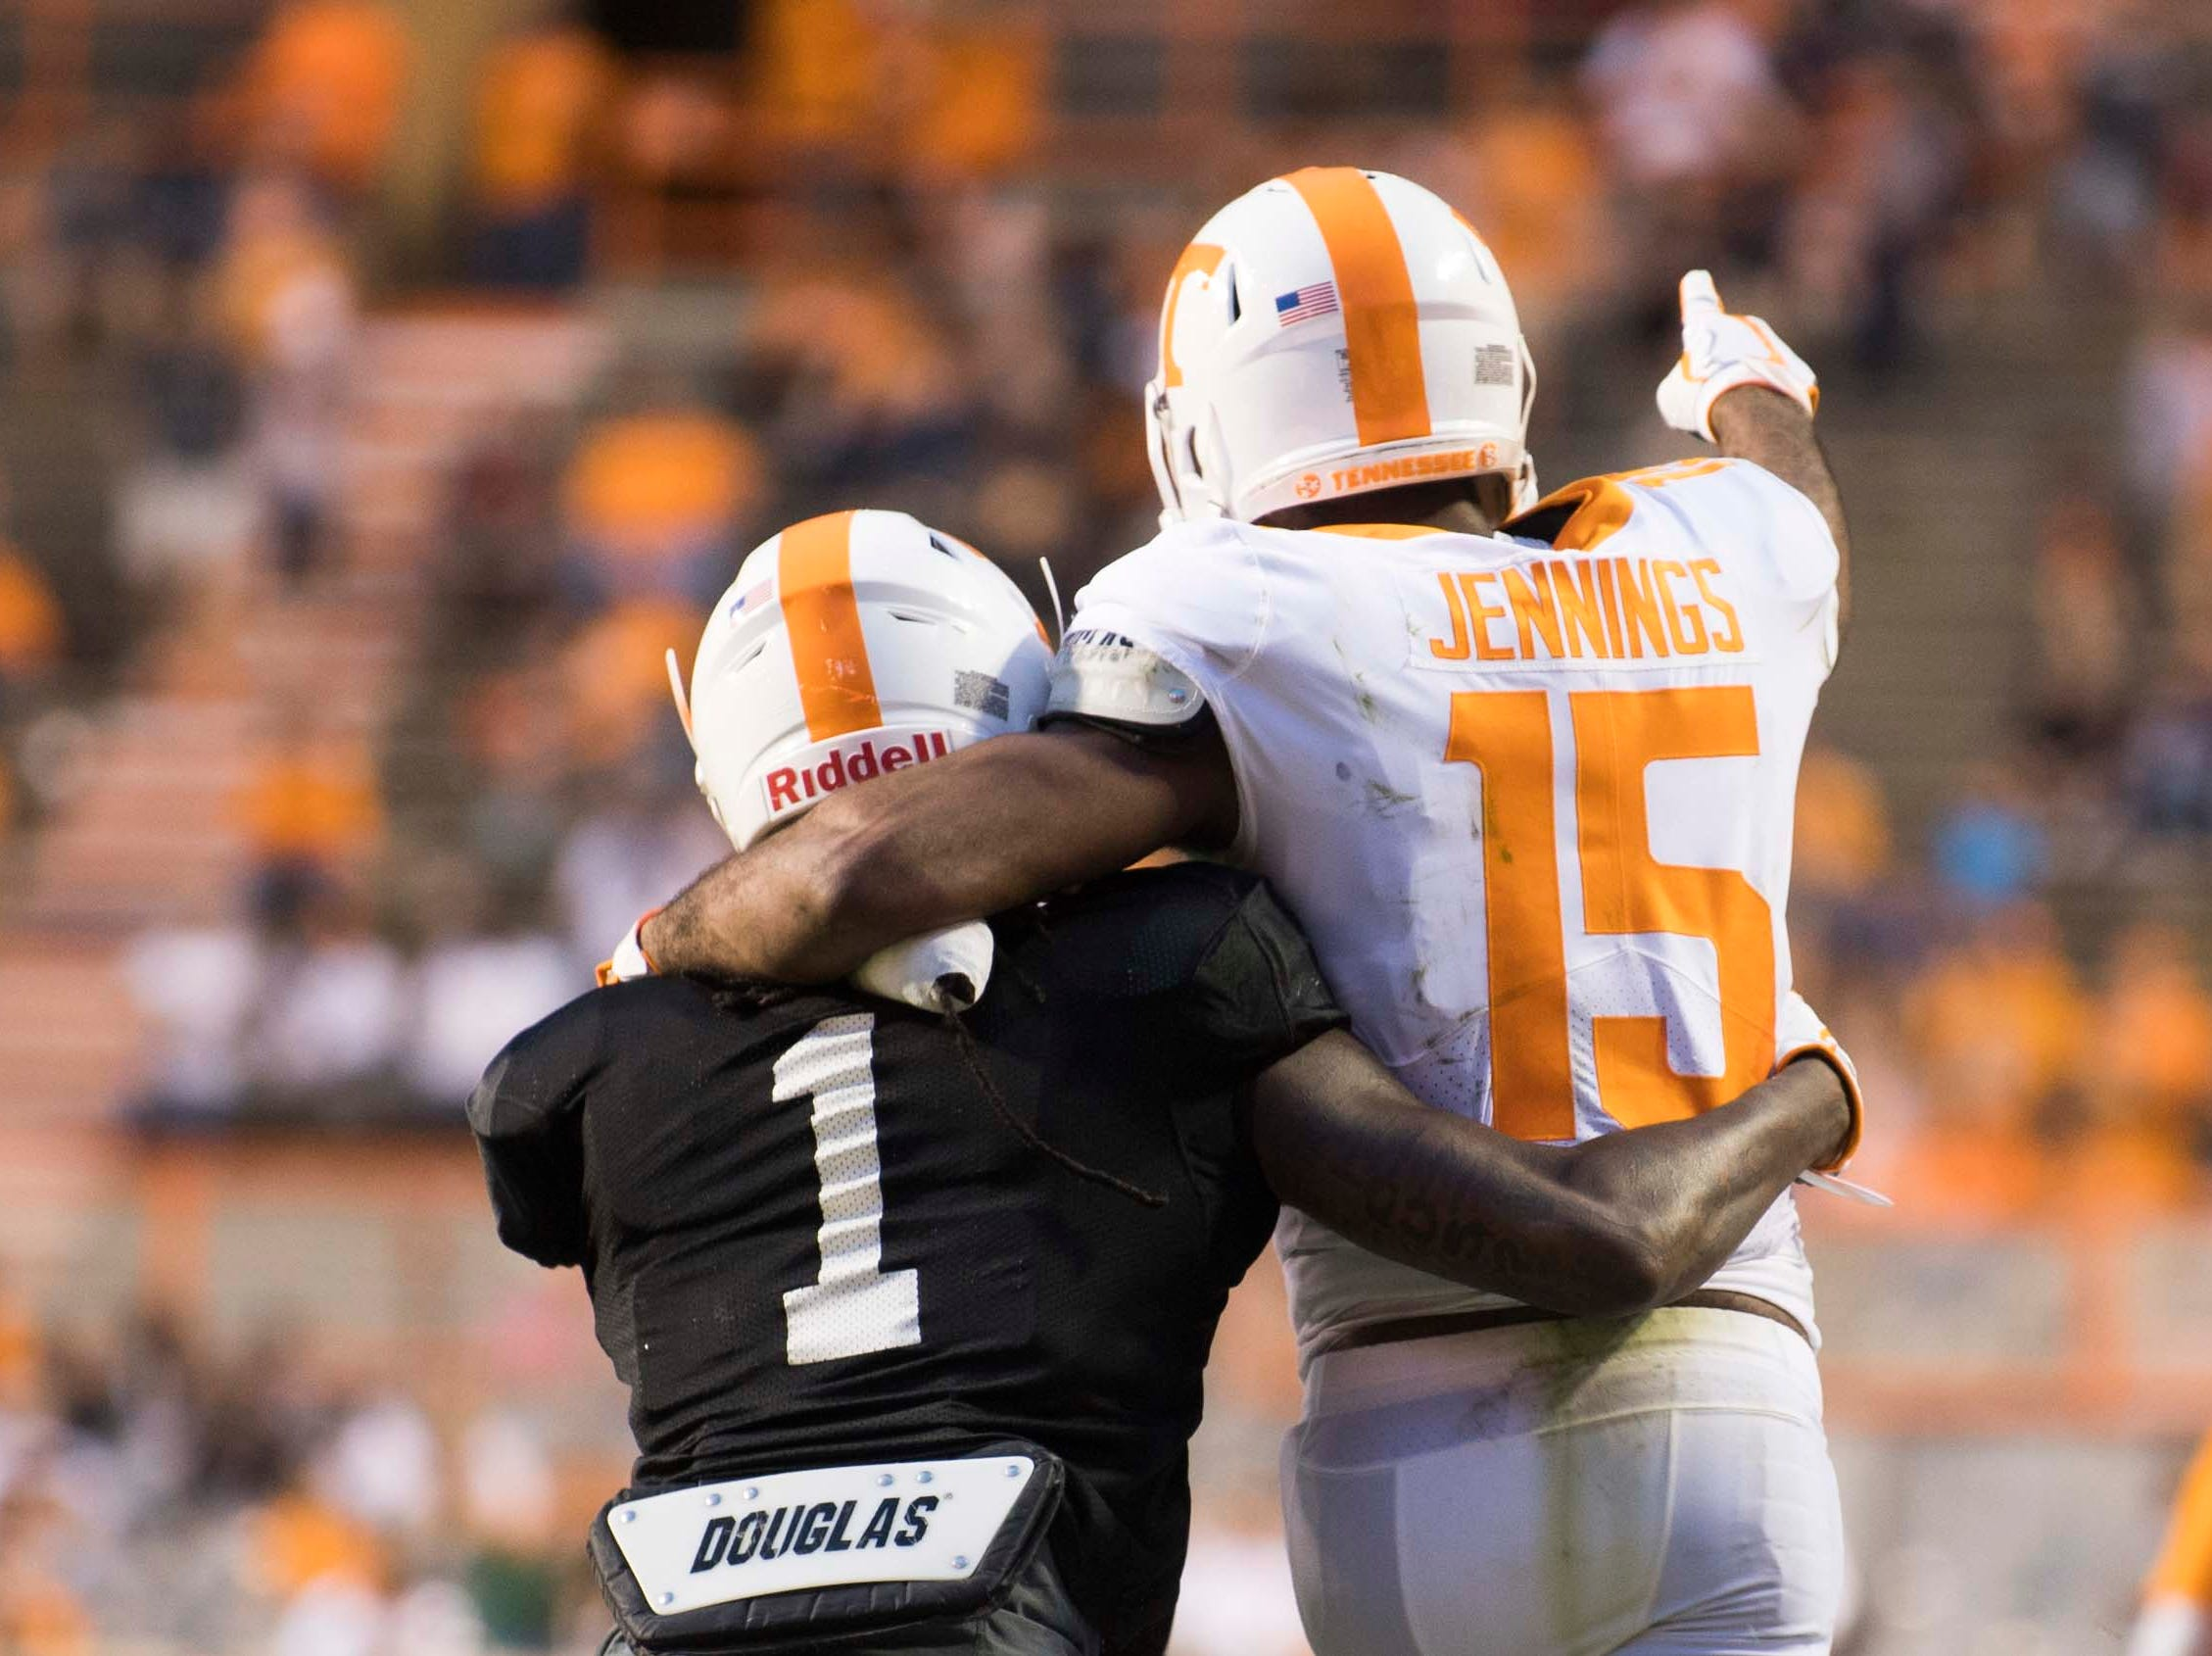 Tennessee wide receiver Marquez Callaway (1) celebrates Tennessee wide receiver Jauan Jennings' (15) touchdown during the Vols spring game in Neyland Stadium in Knoxville Saturday, April 13, 2019.